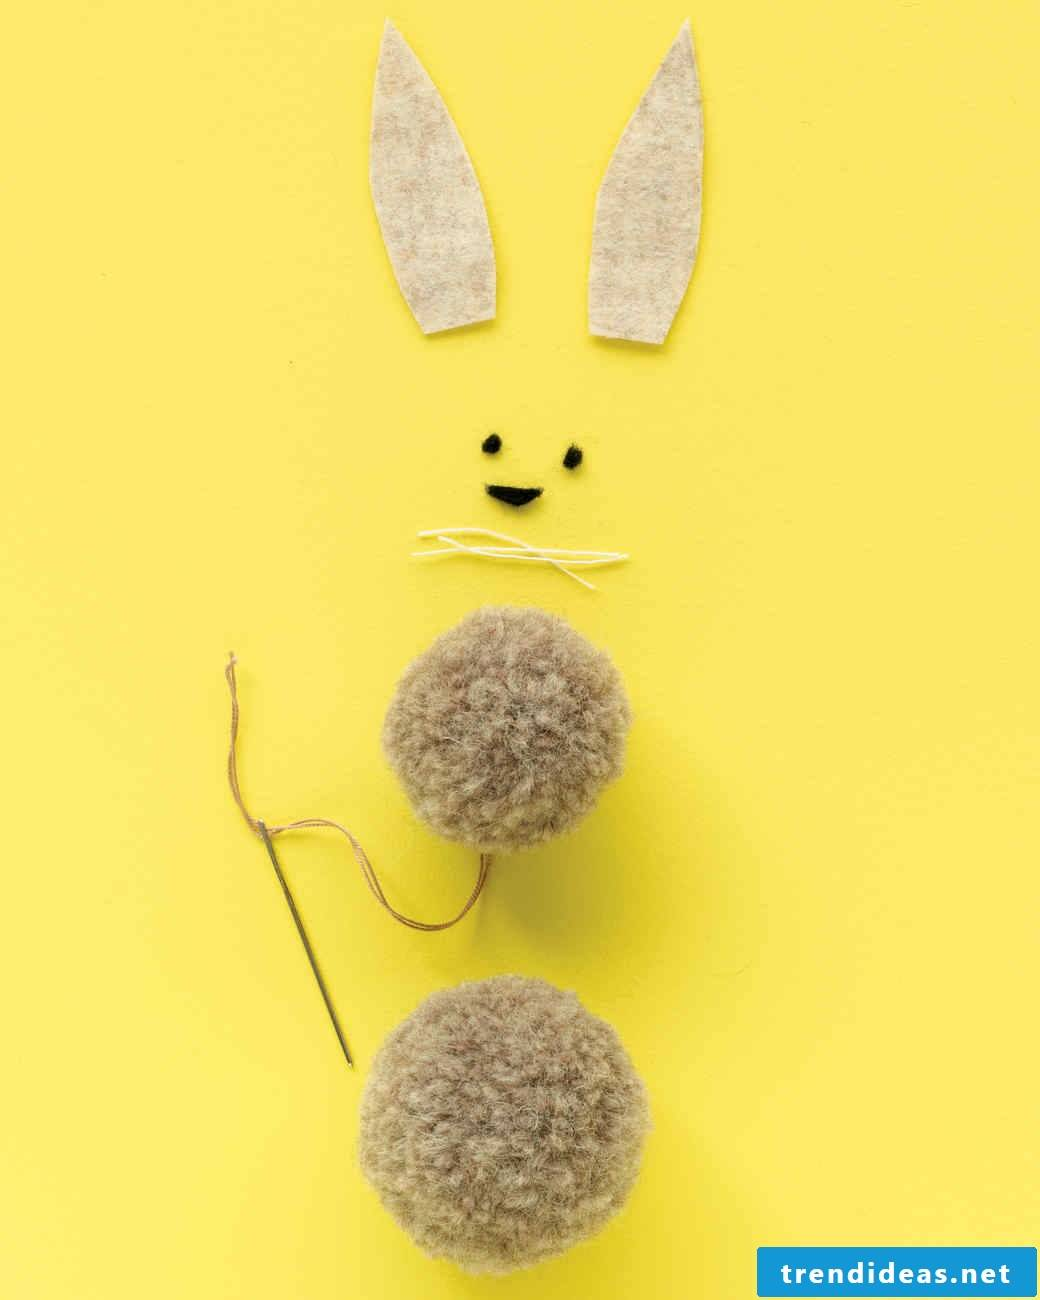 Be creative and make a bunny